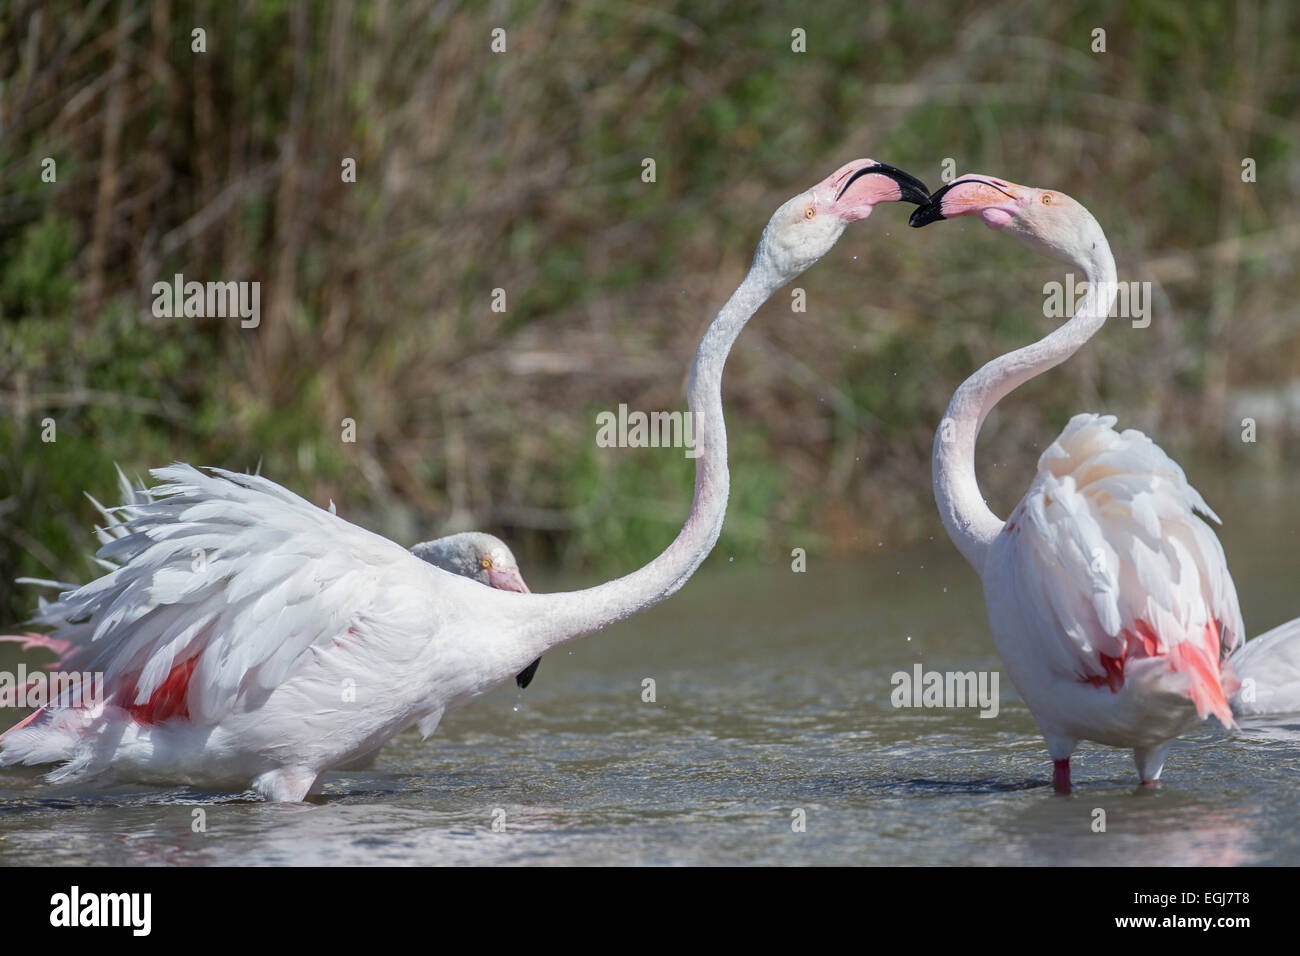 PARC ORNITOLOGIQUE DU PONT DE GAU, FRANCE - MAY 15, 2014: Pair of greater flamingoes (Phoenicopterus roseus). Stock Photo